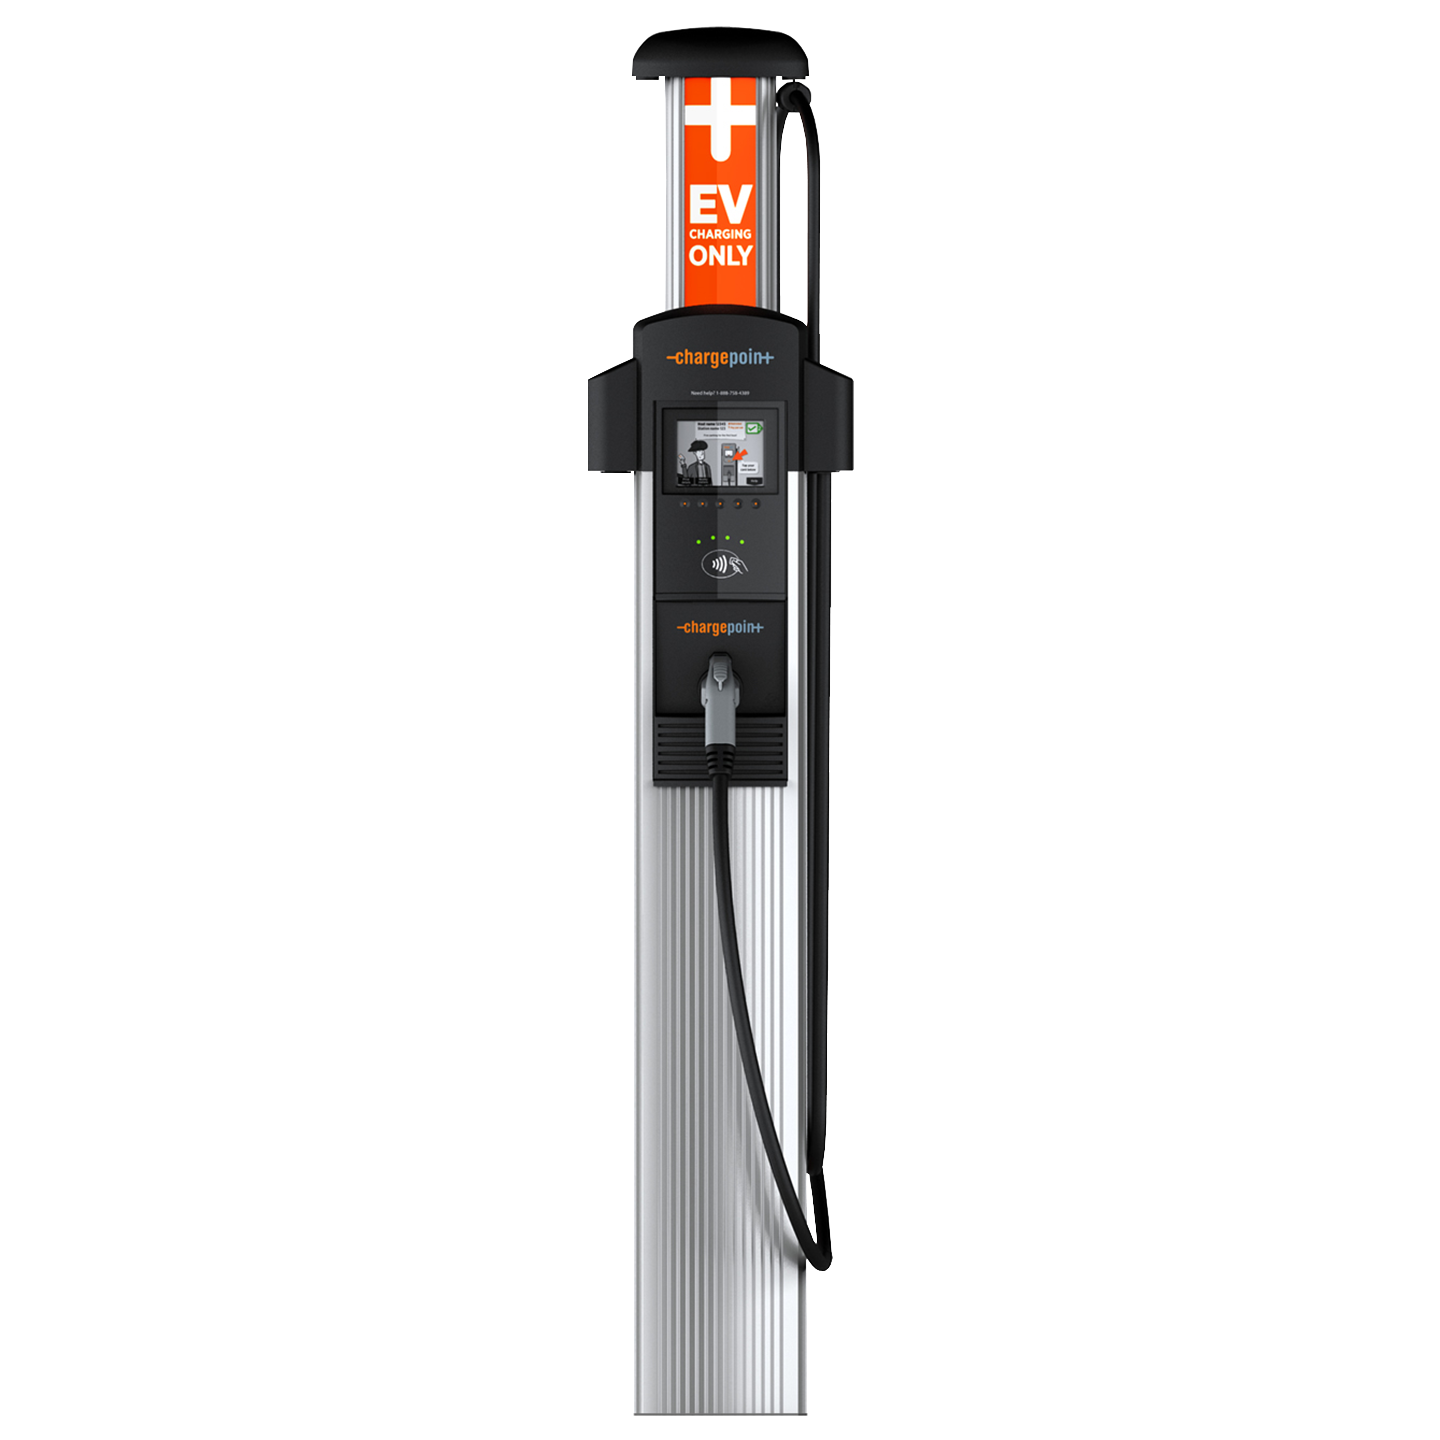 Electric Vehicle Charging Systems